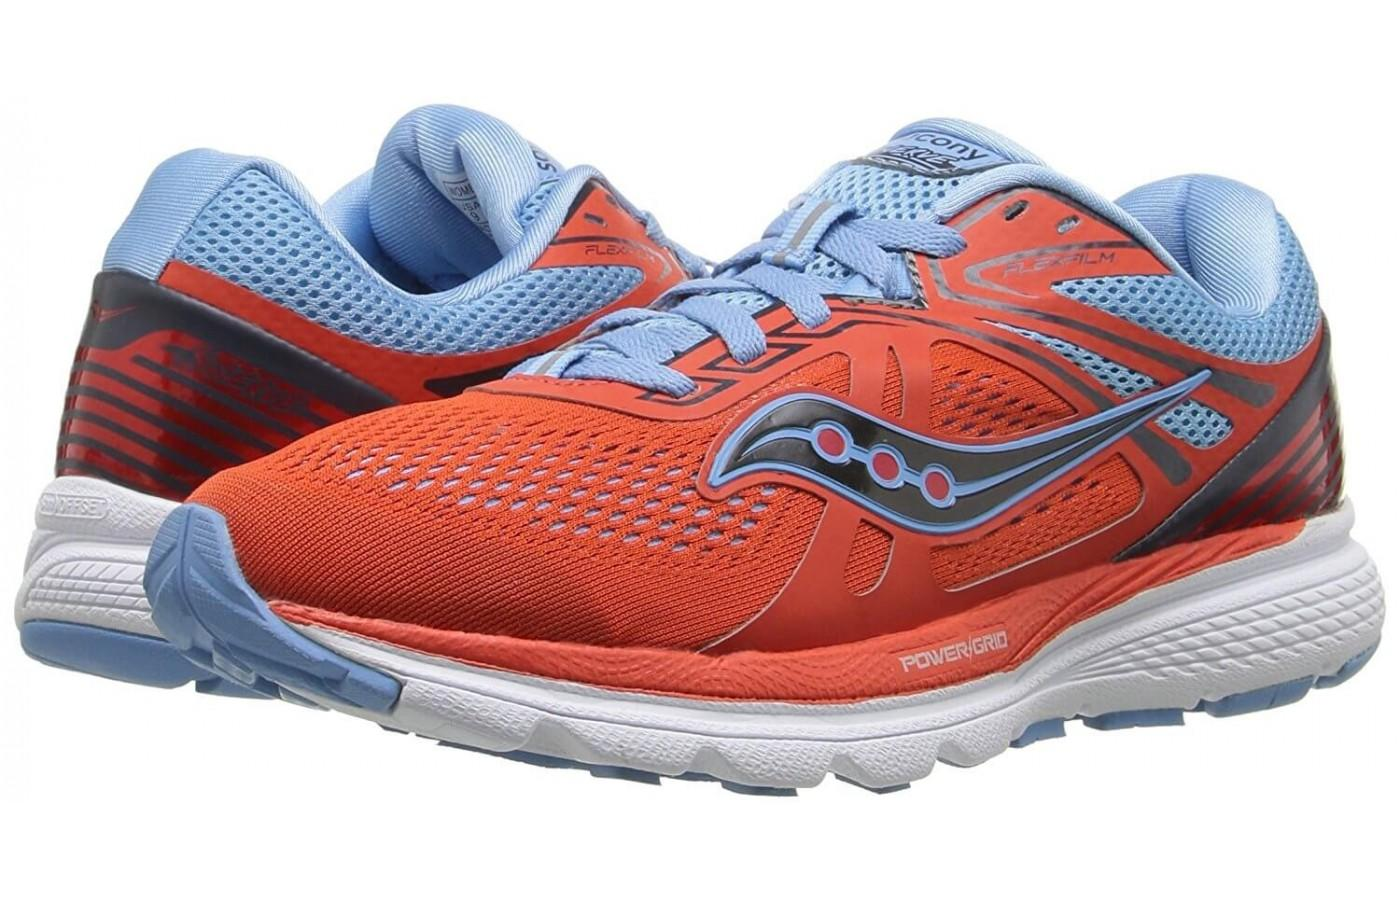 Saucony Swerve has an 8mm drop